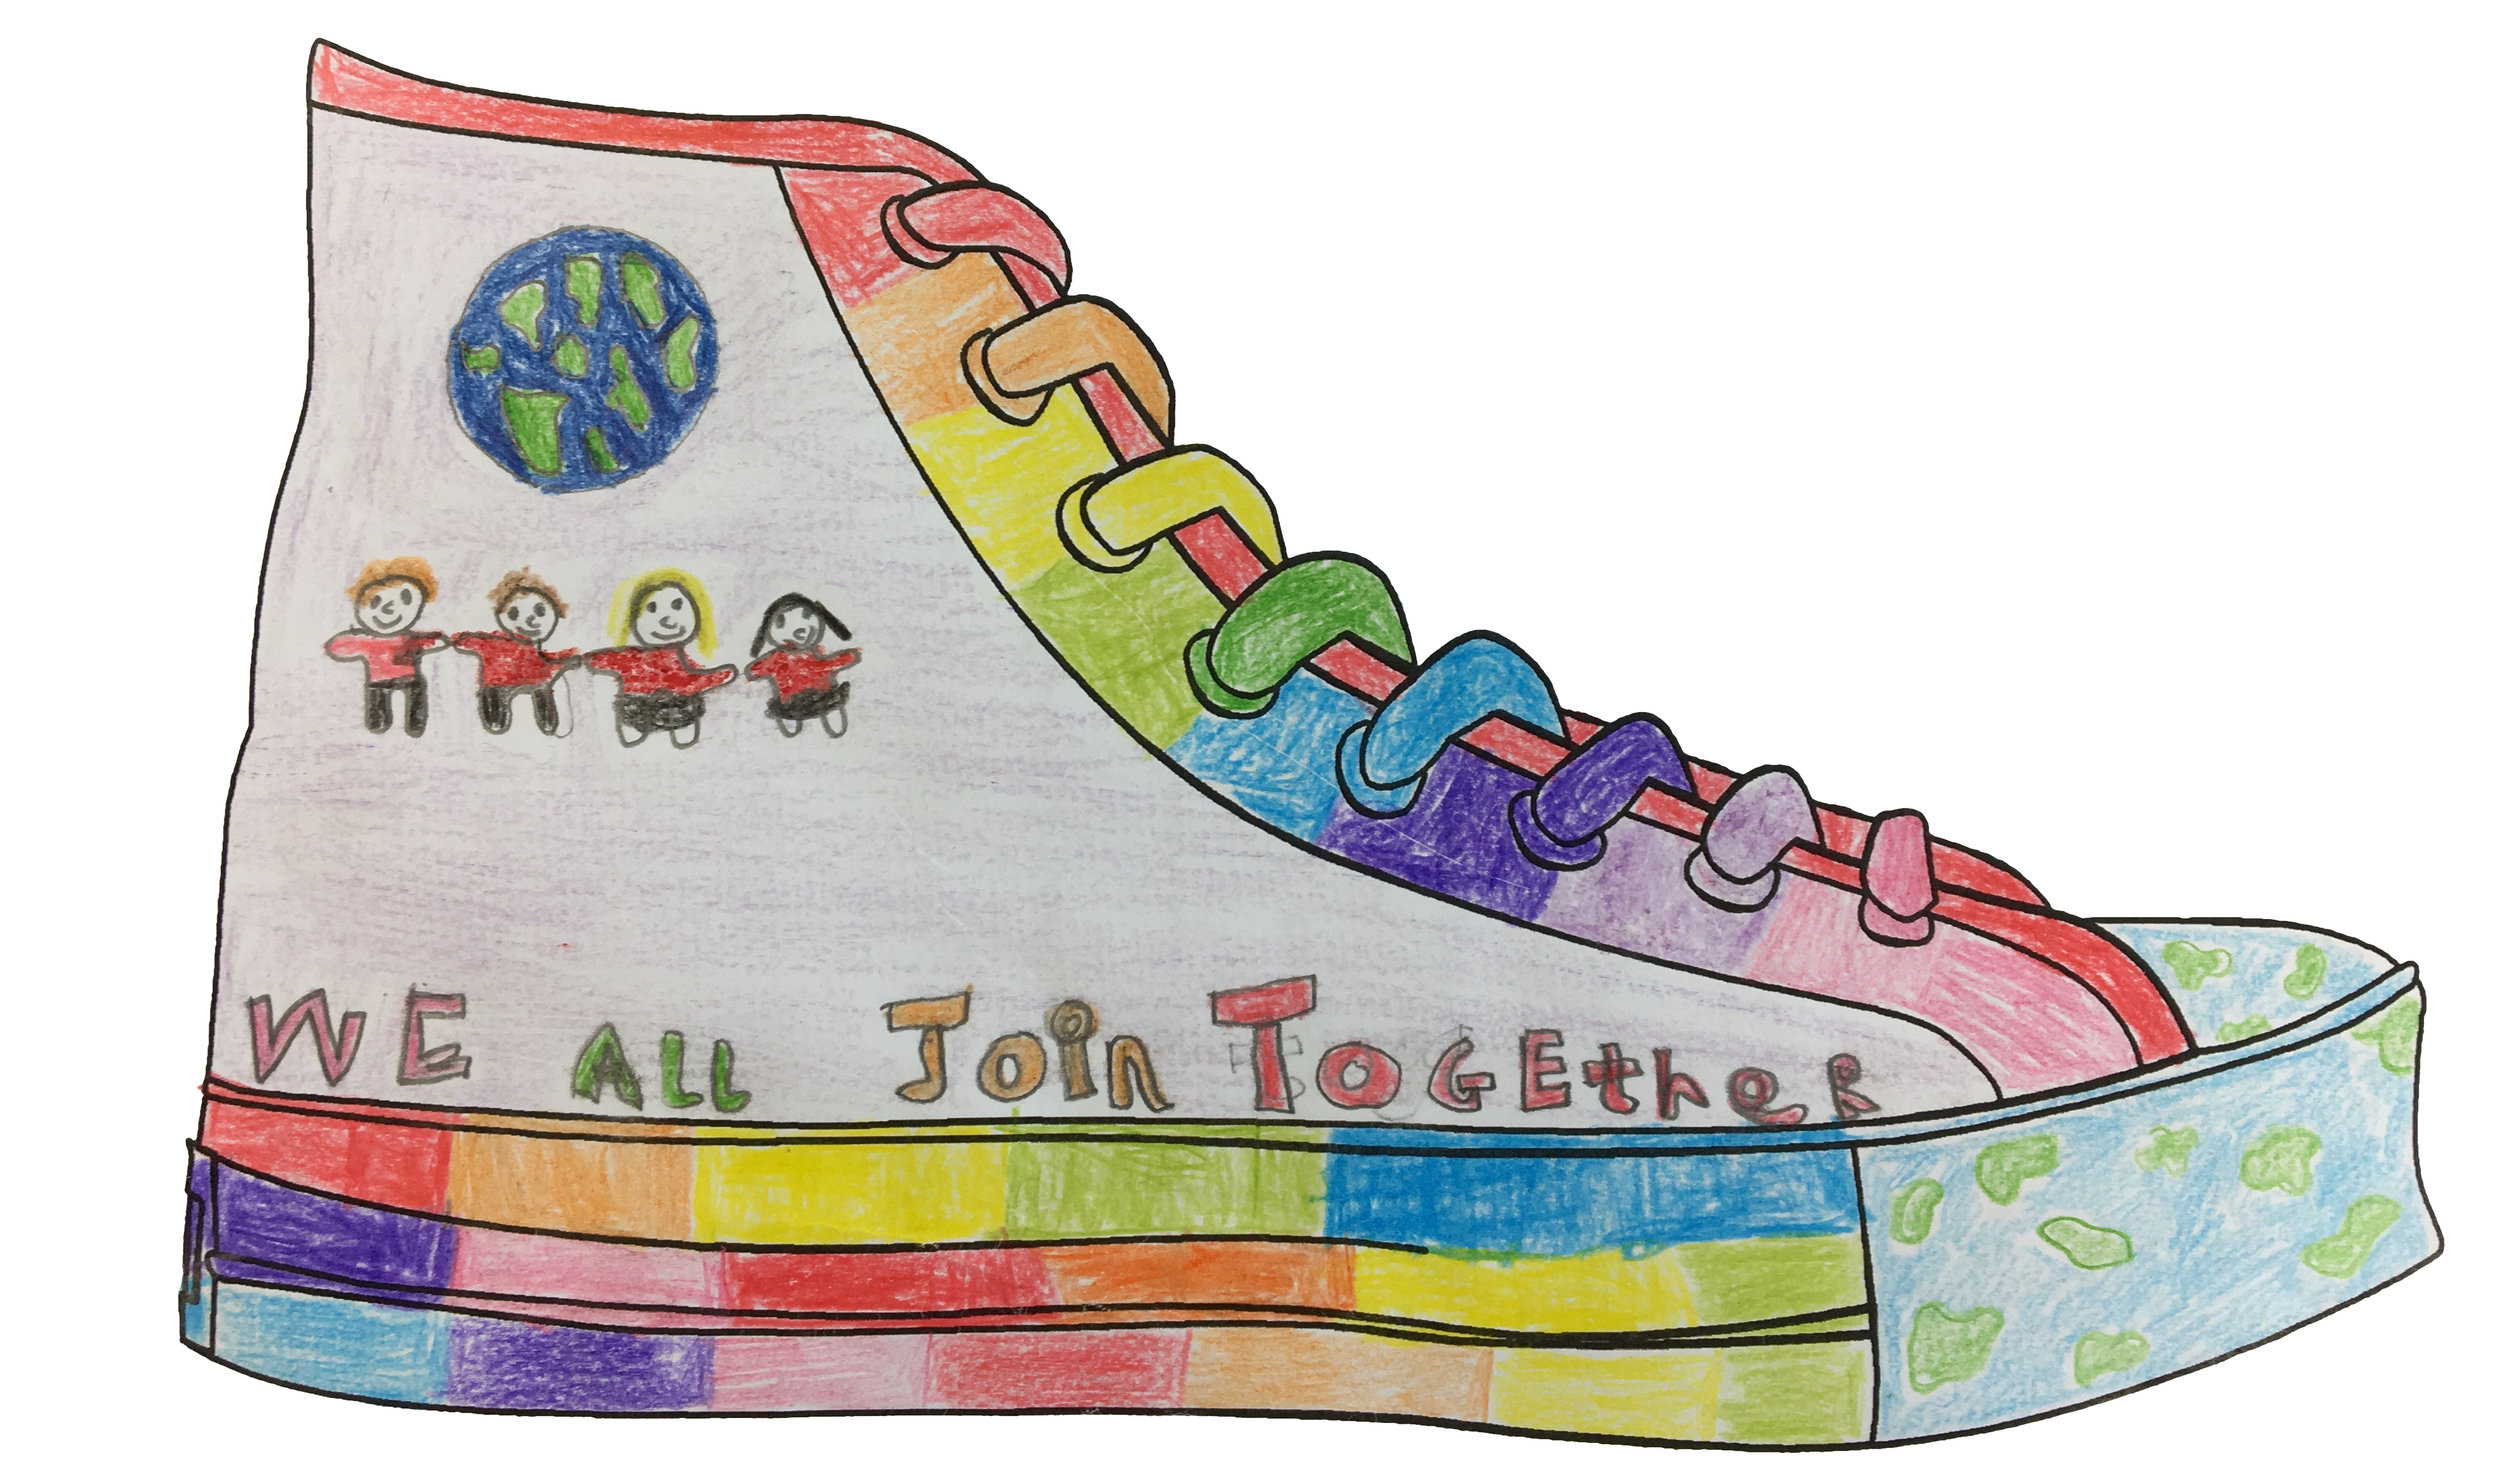 Tochi Emenogu - Terrace Road Primary School - Swansea - Clothing Design Years 1&2 Category